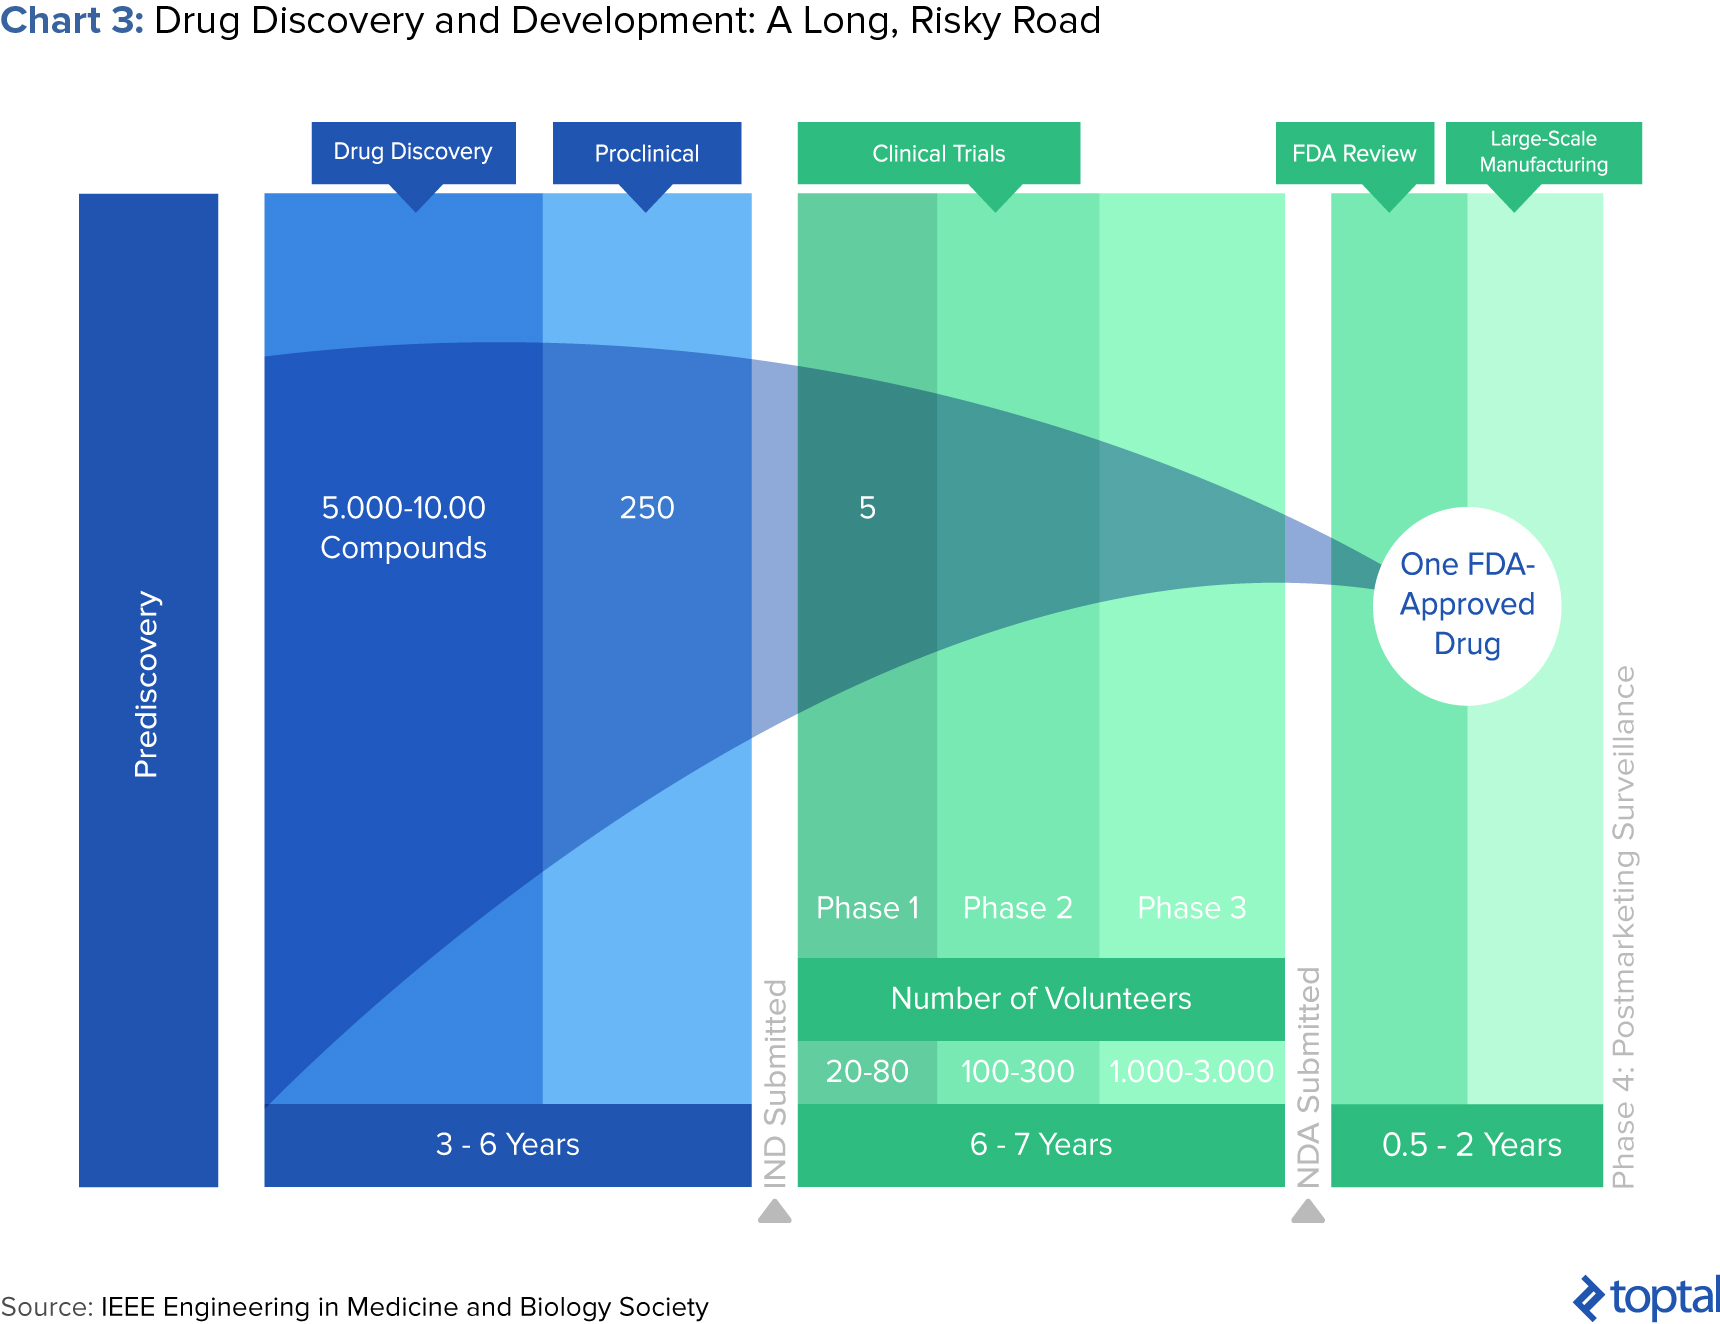 Chart 3: Drug Discovery and Development: A Long, Risky Road